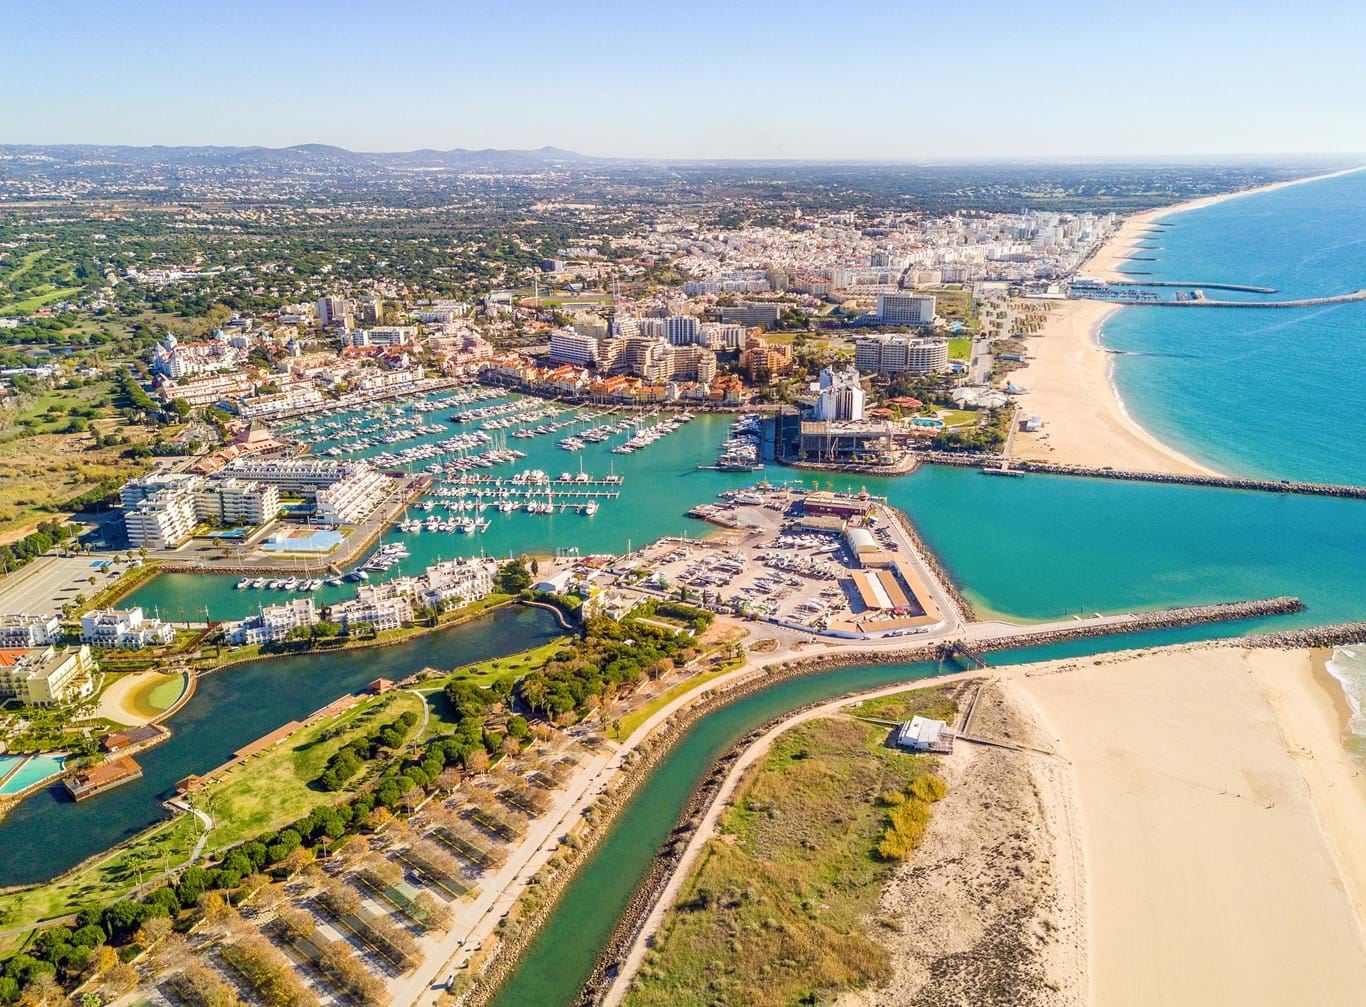 Vilamoura, the iconic Marina